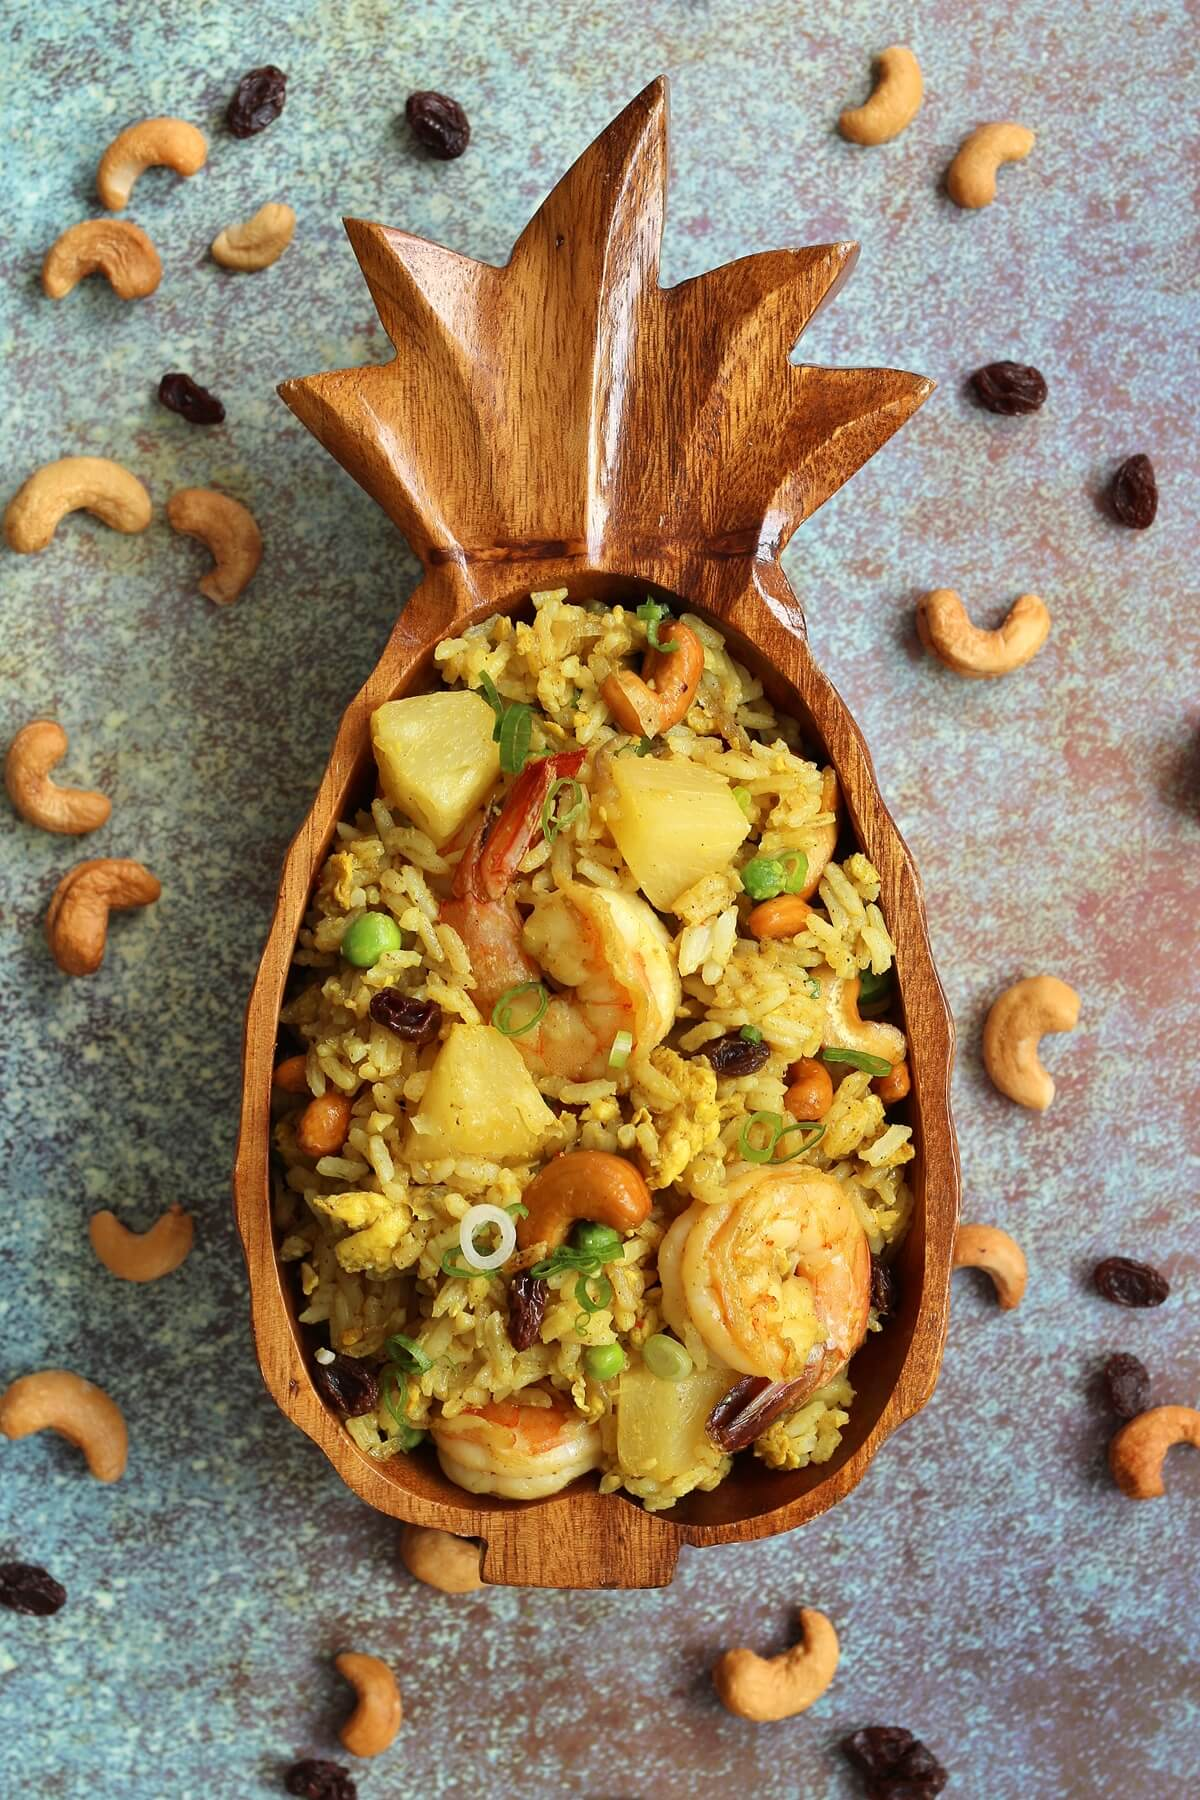 overhead view of fried rice in a pineapple bowl with cashews and raisins scattered around it